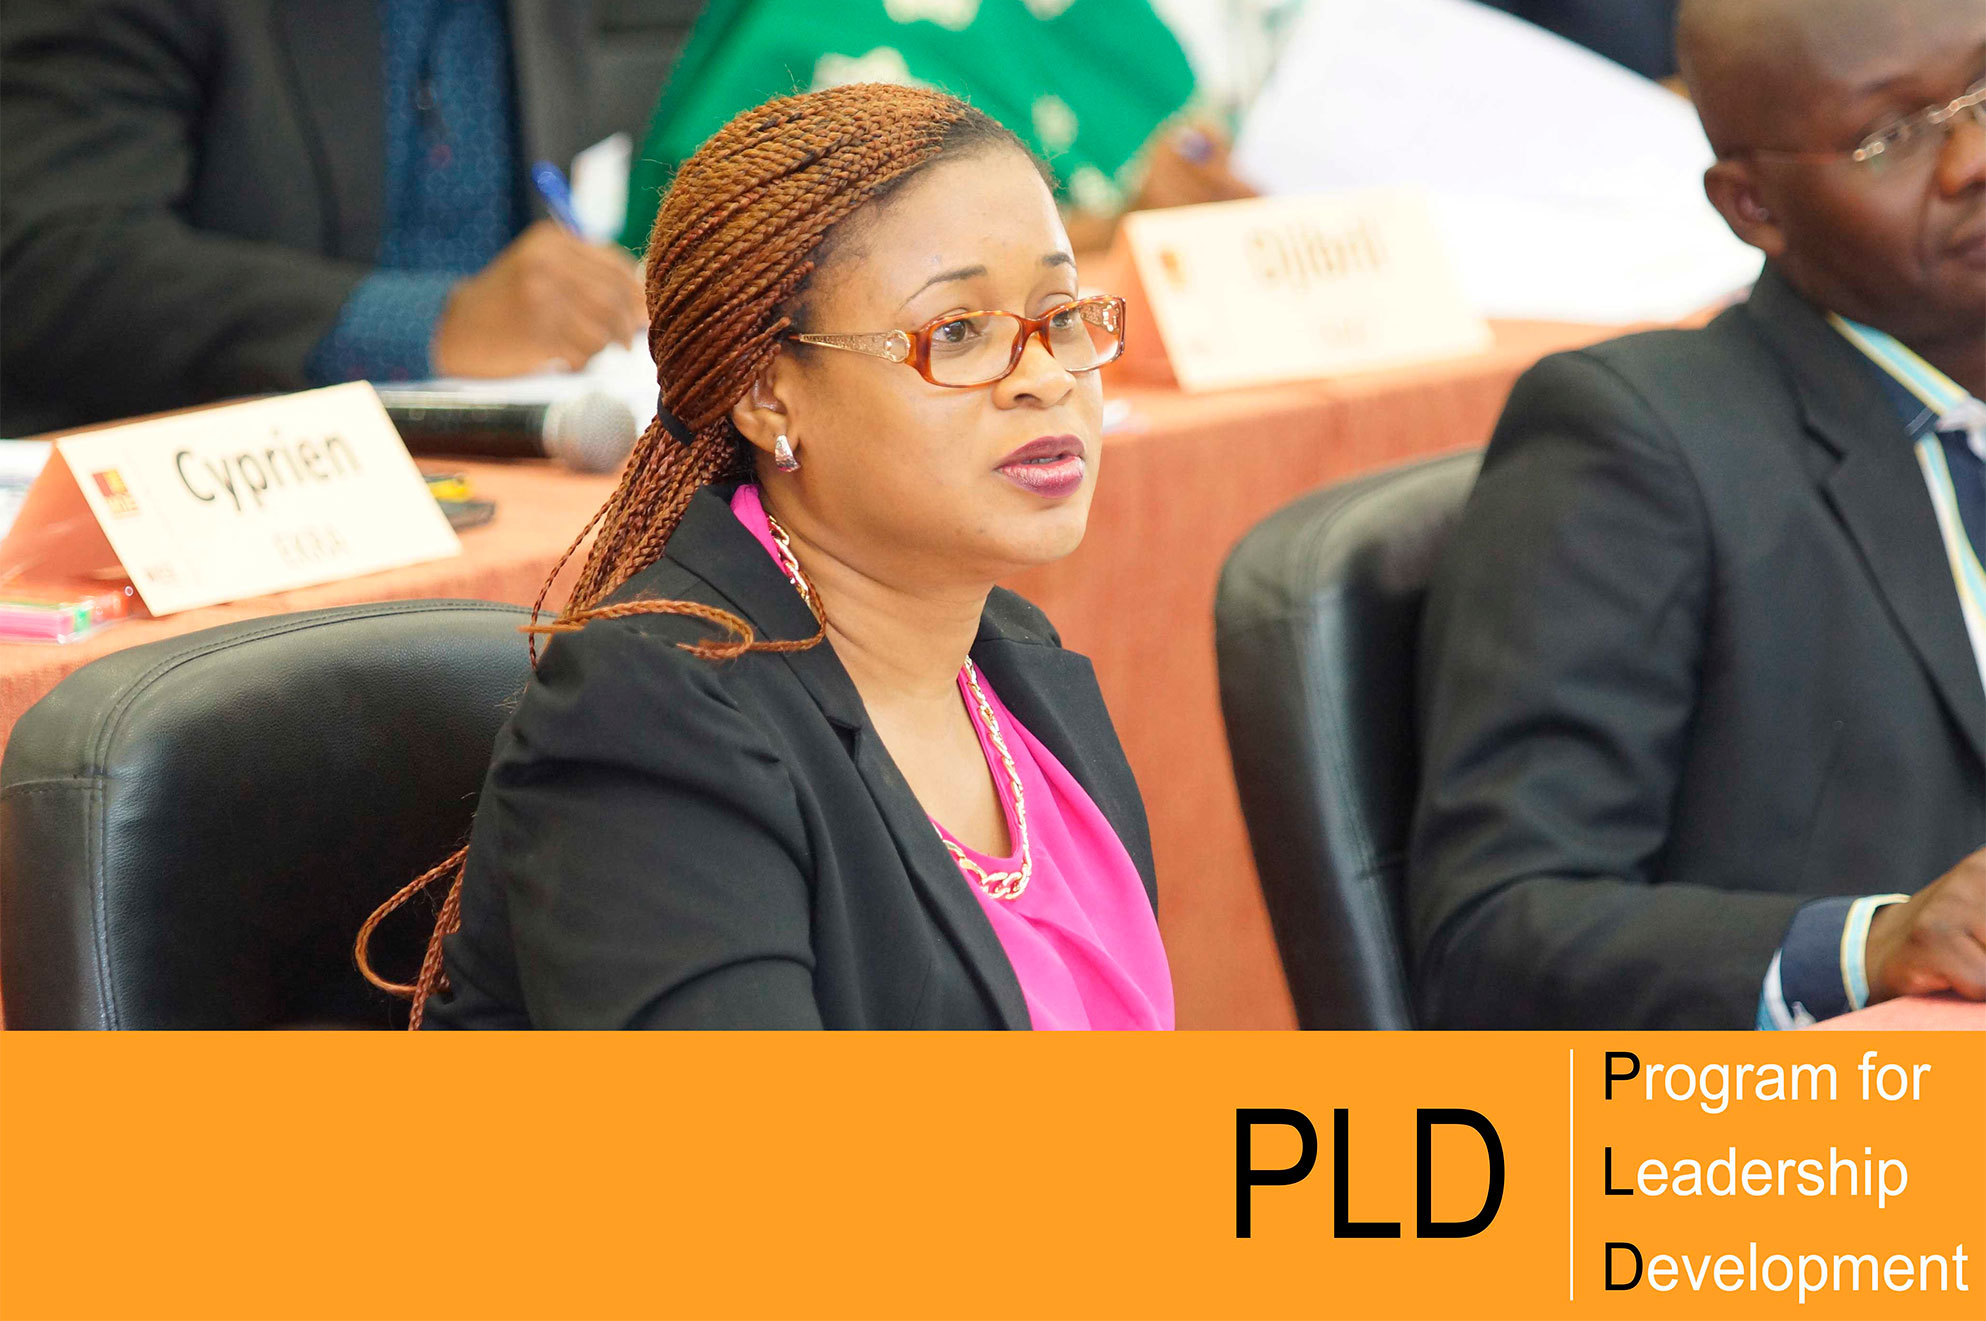 Program for Leadership Development (PLD)